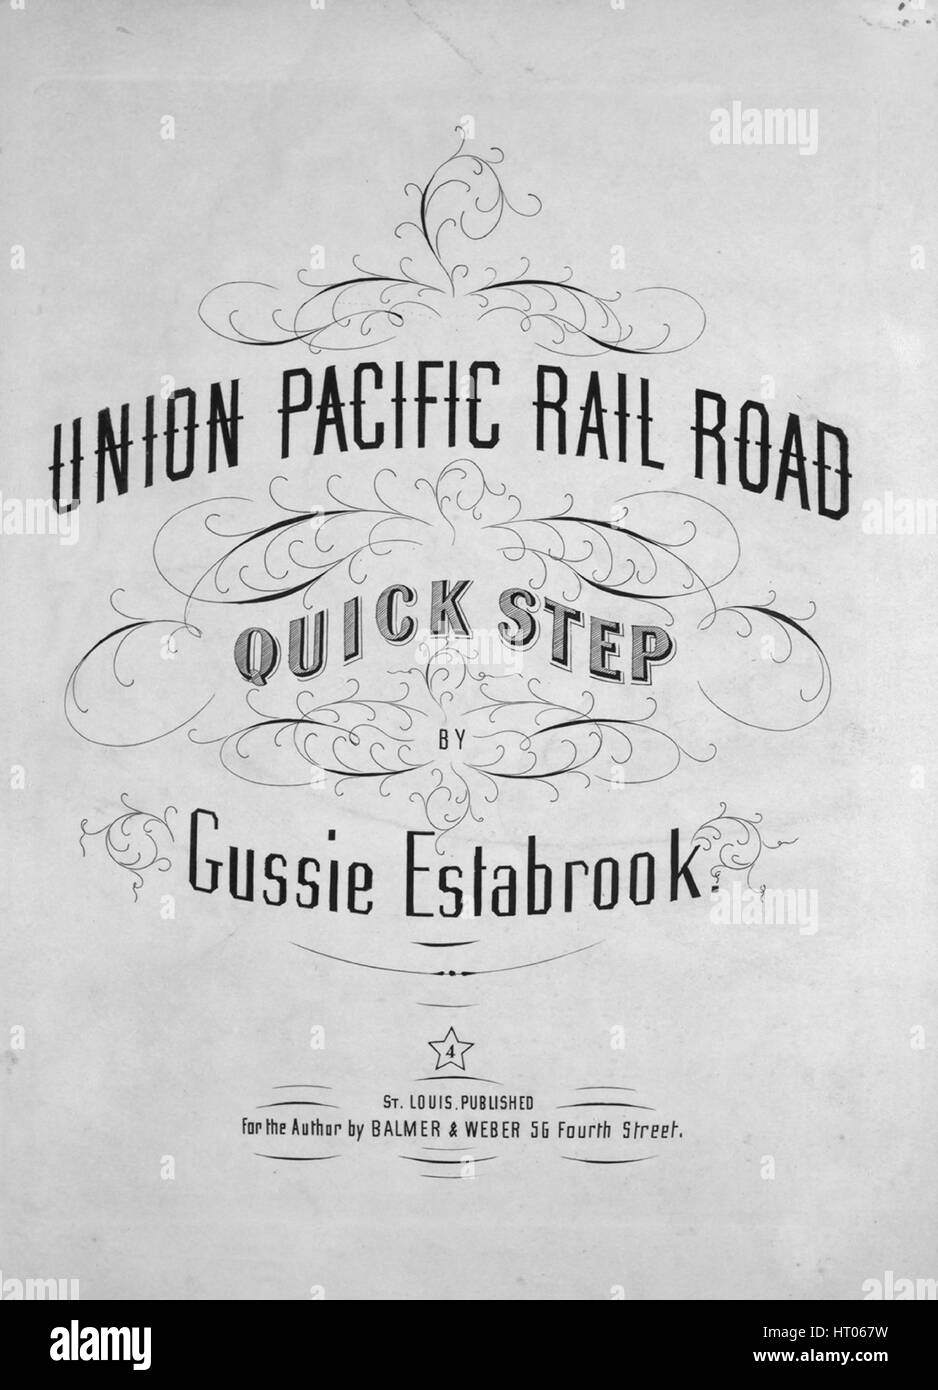 Sheet music cover image of the song 'Unin Pacific Rail Road Quick